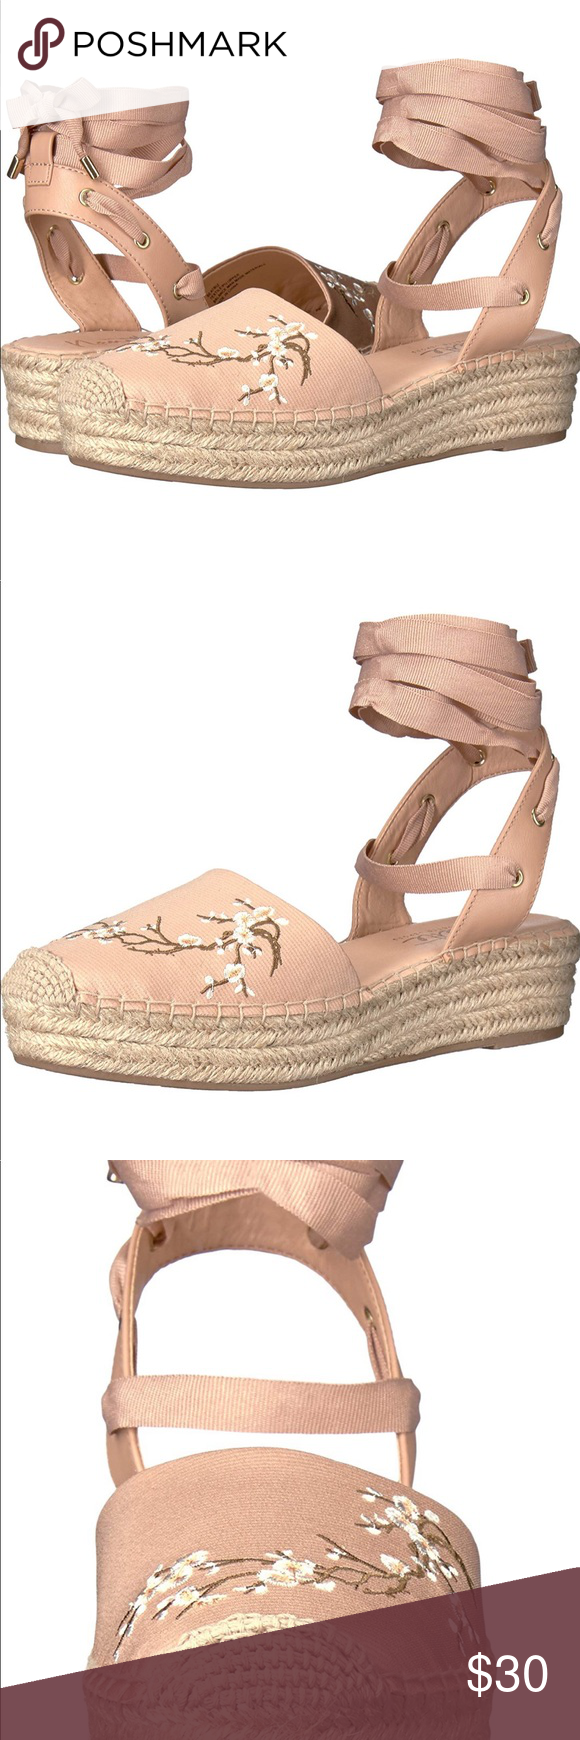 6650ae7c965 Nanette Lepore• Blush Espadrille Wedge Sandal•8.5 Nanette Lepore • Blush  Espadrille Wedge Sandal tie wrap around. Closed toe. EXCELLENT CONDITION!